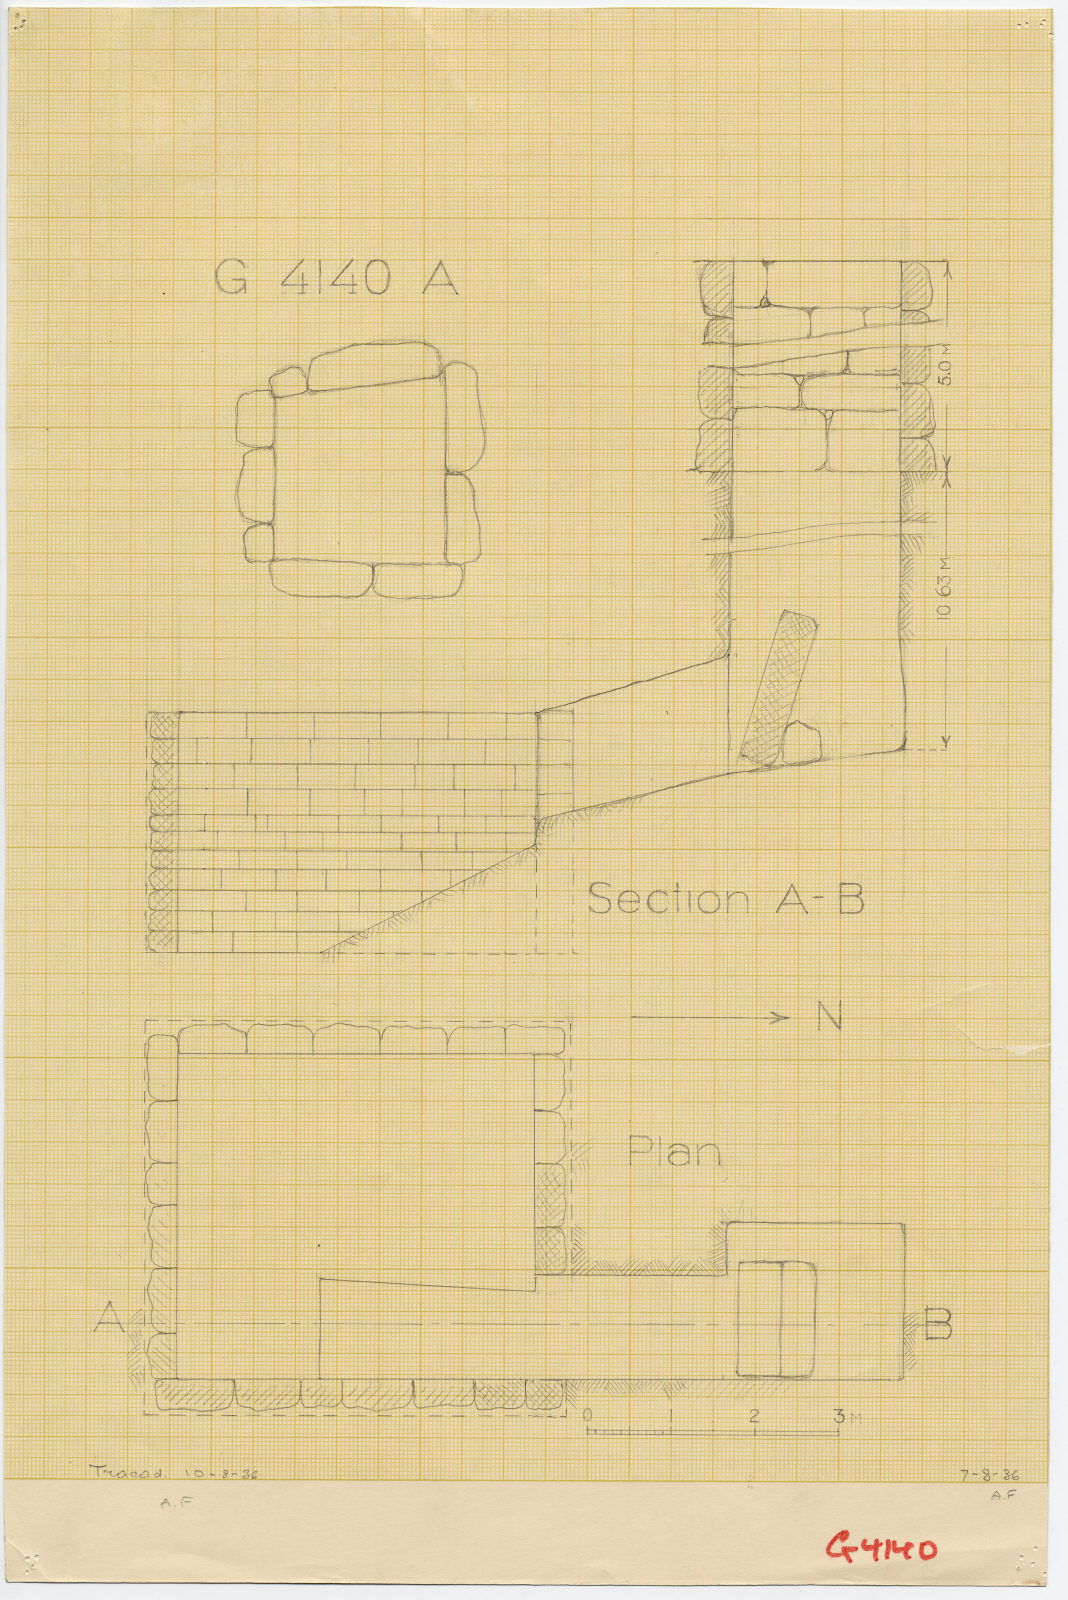 Maps and plans: G 4140, Shaft A